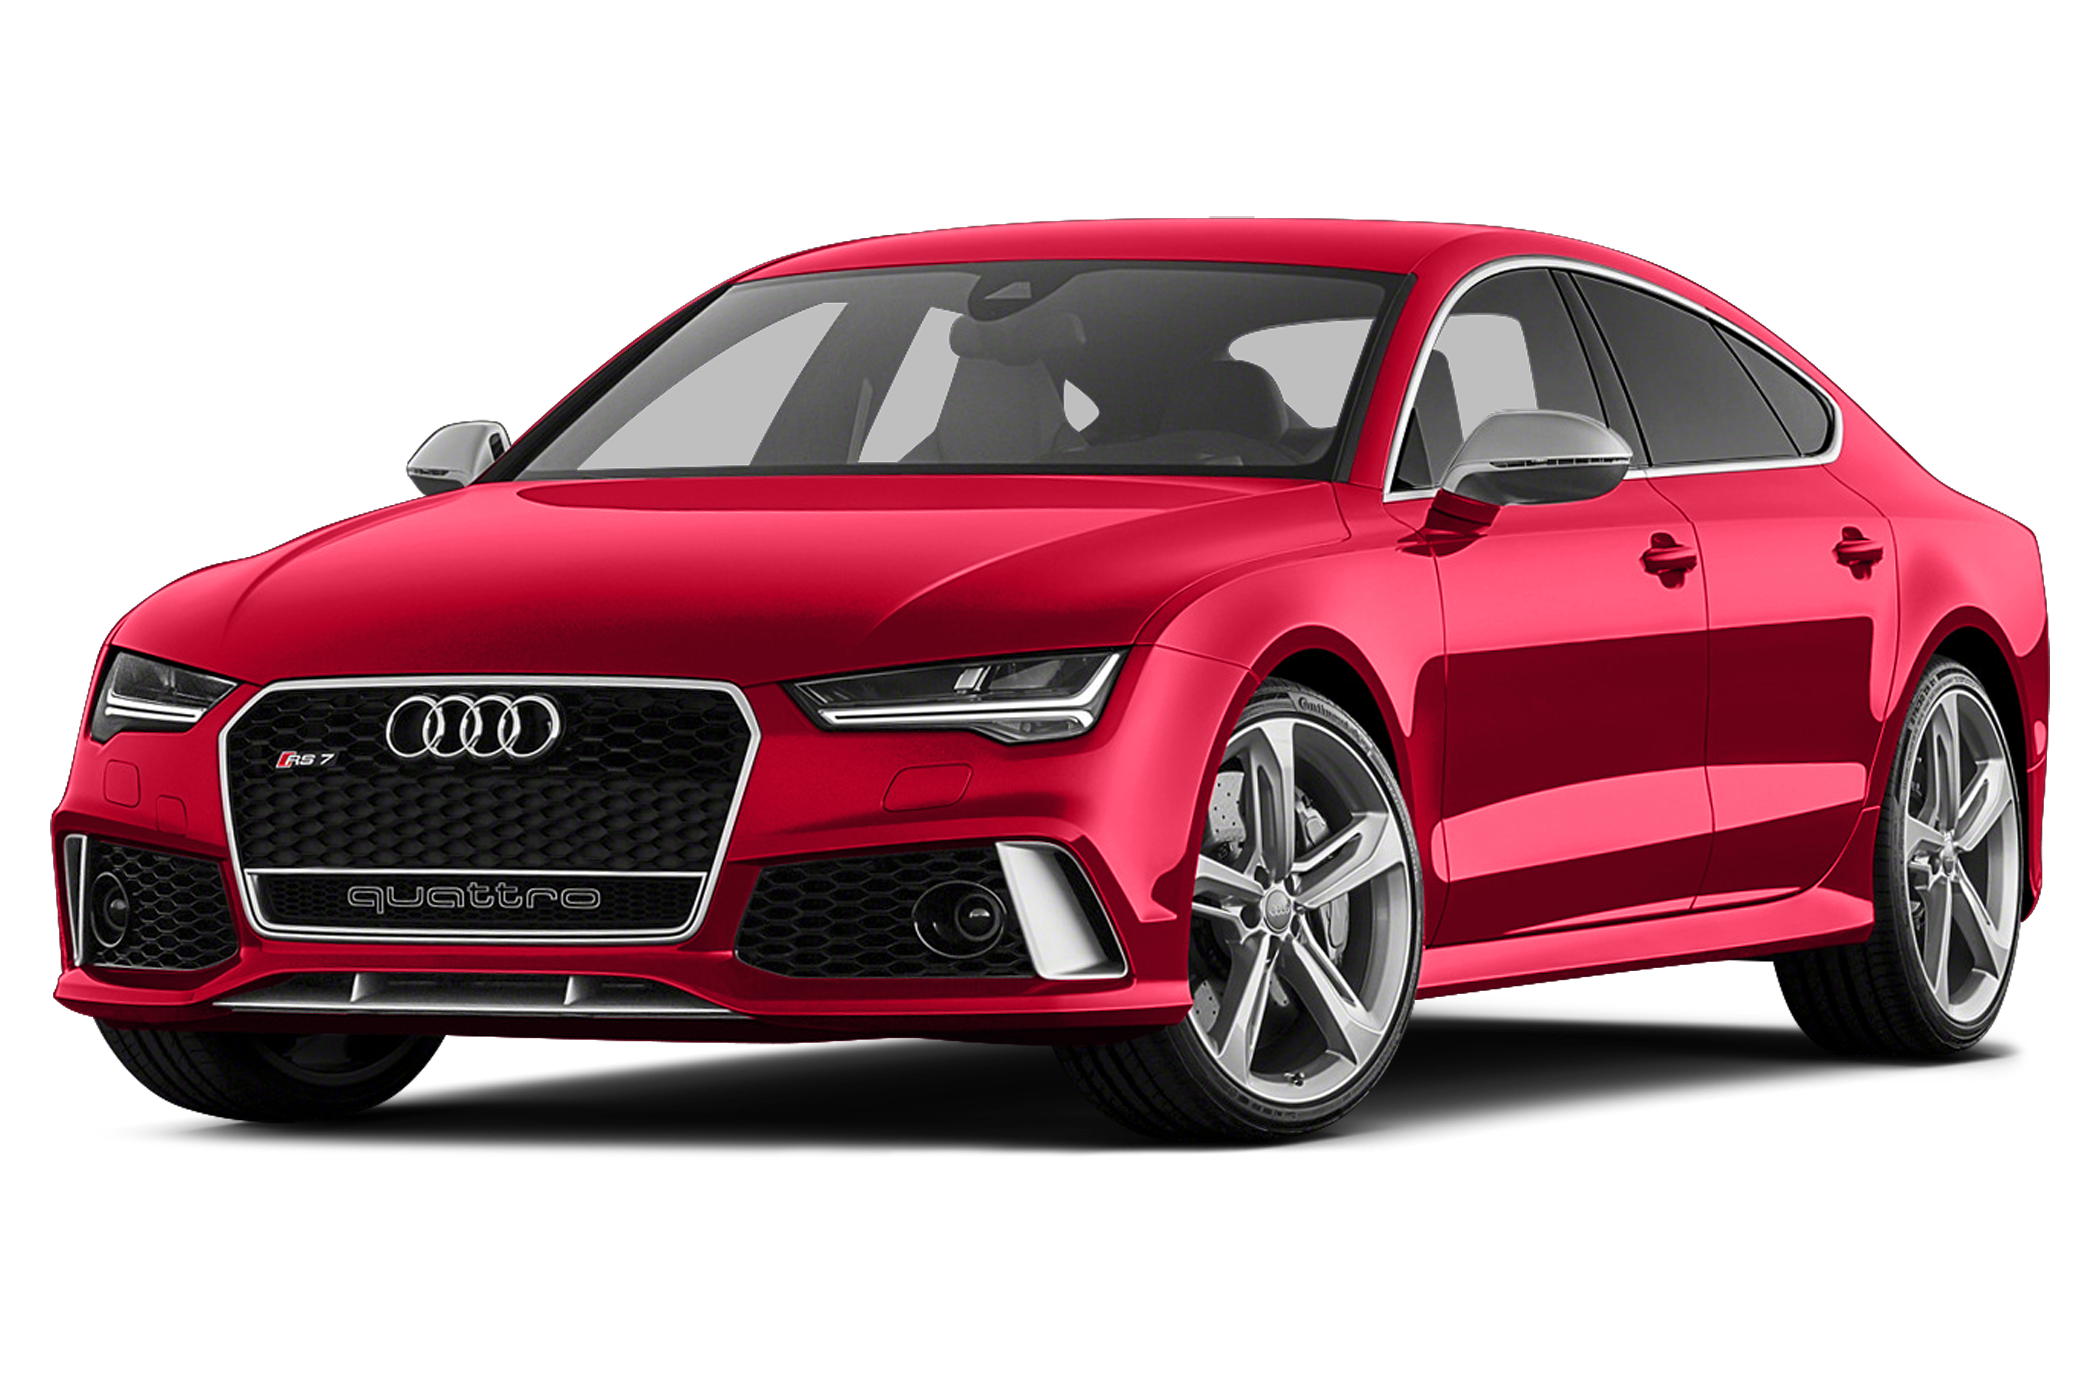 2016 Audi RS 7 Png